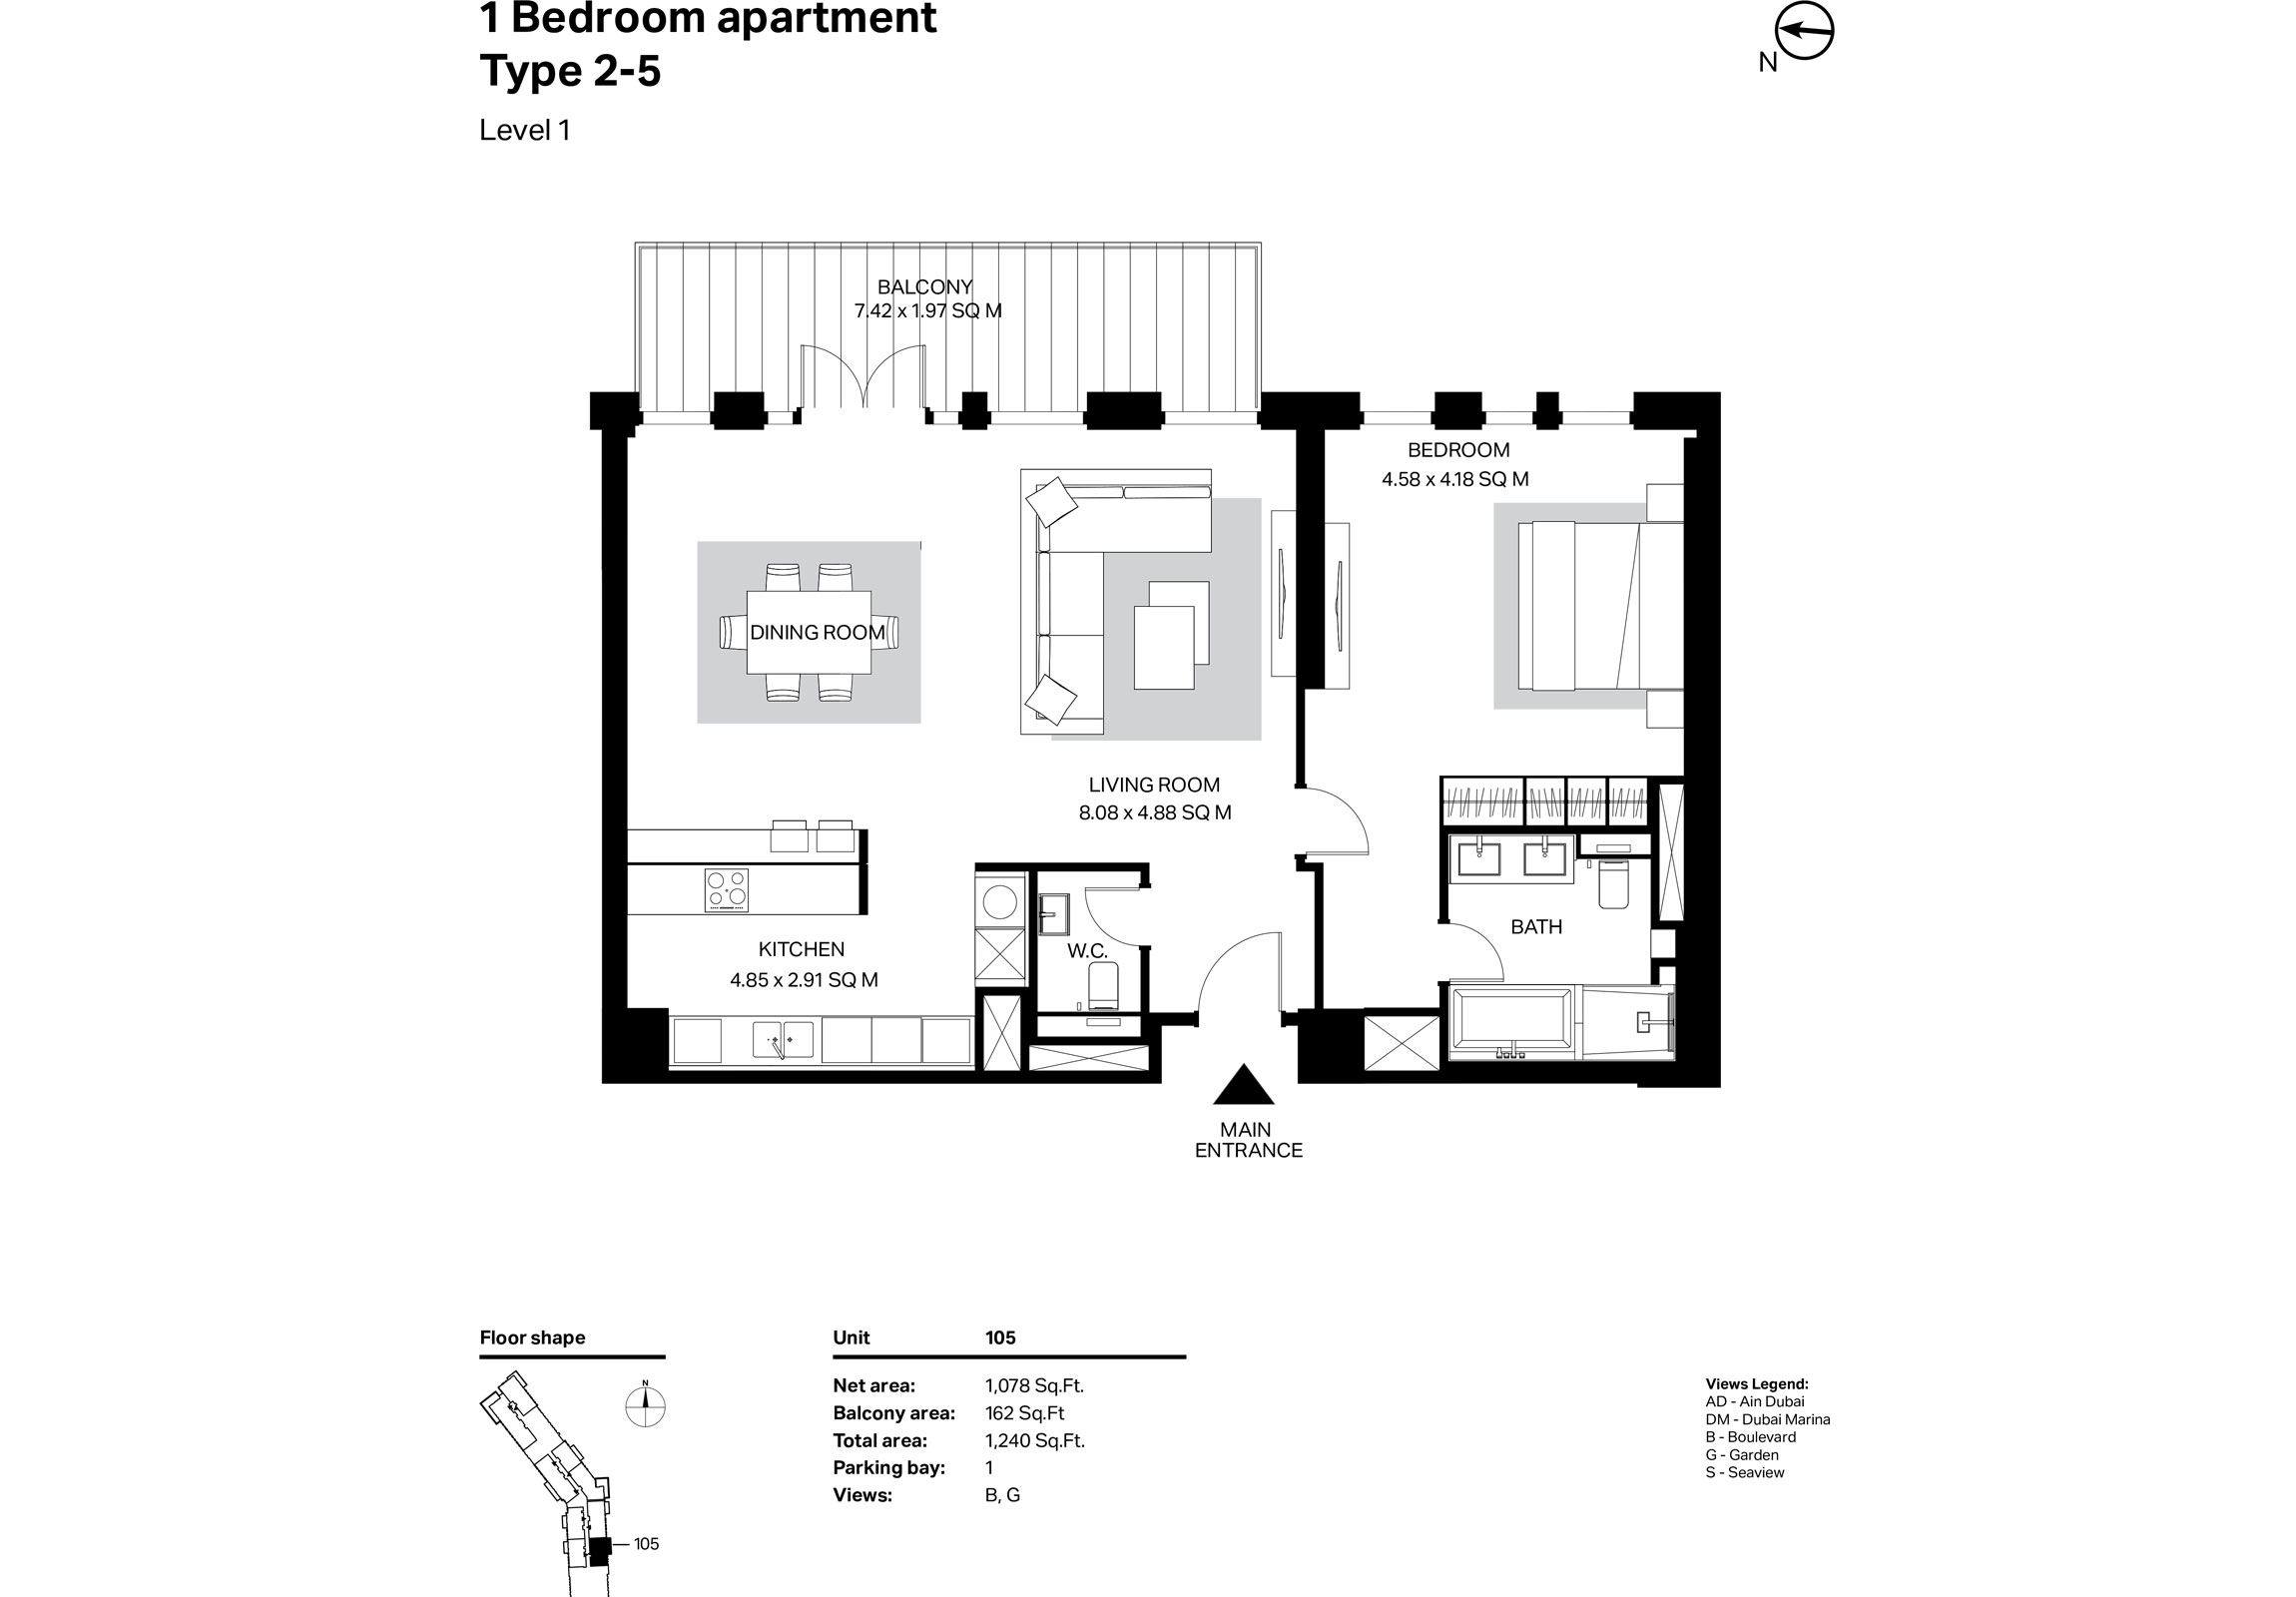 Building 2 - 1 Bedroom Type 2-5 Level 1 Size 1240    sq. ft.